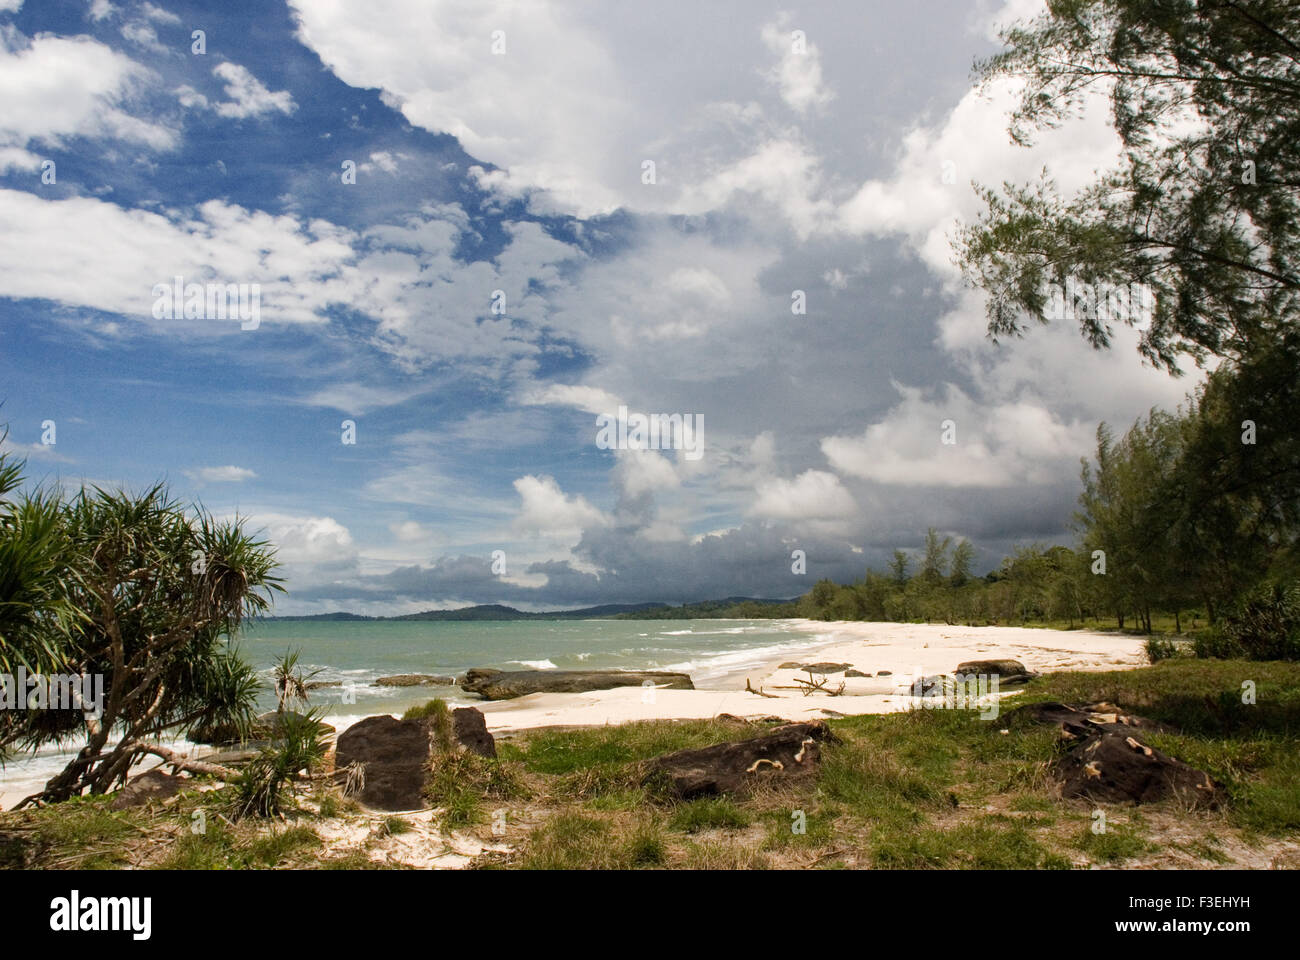 Virgin beach on the waterfront of Ream National Park. Ream National Park is located about 12 miles from Sihanoukville, - Stock Image